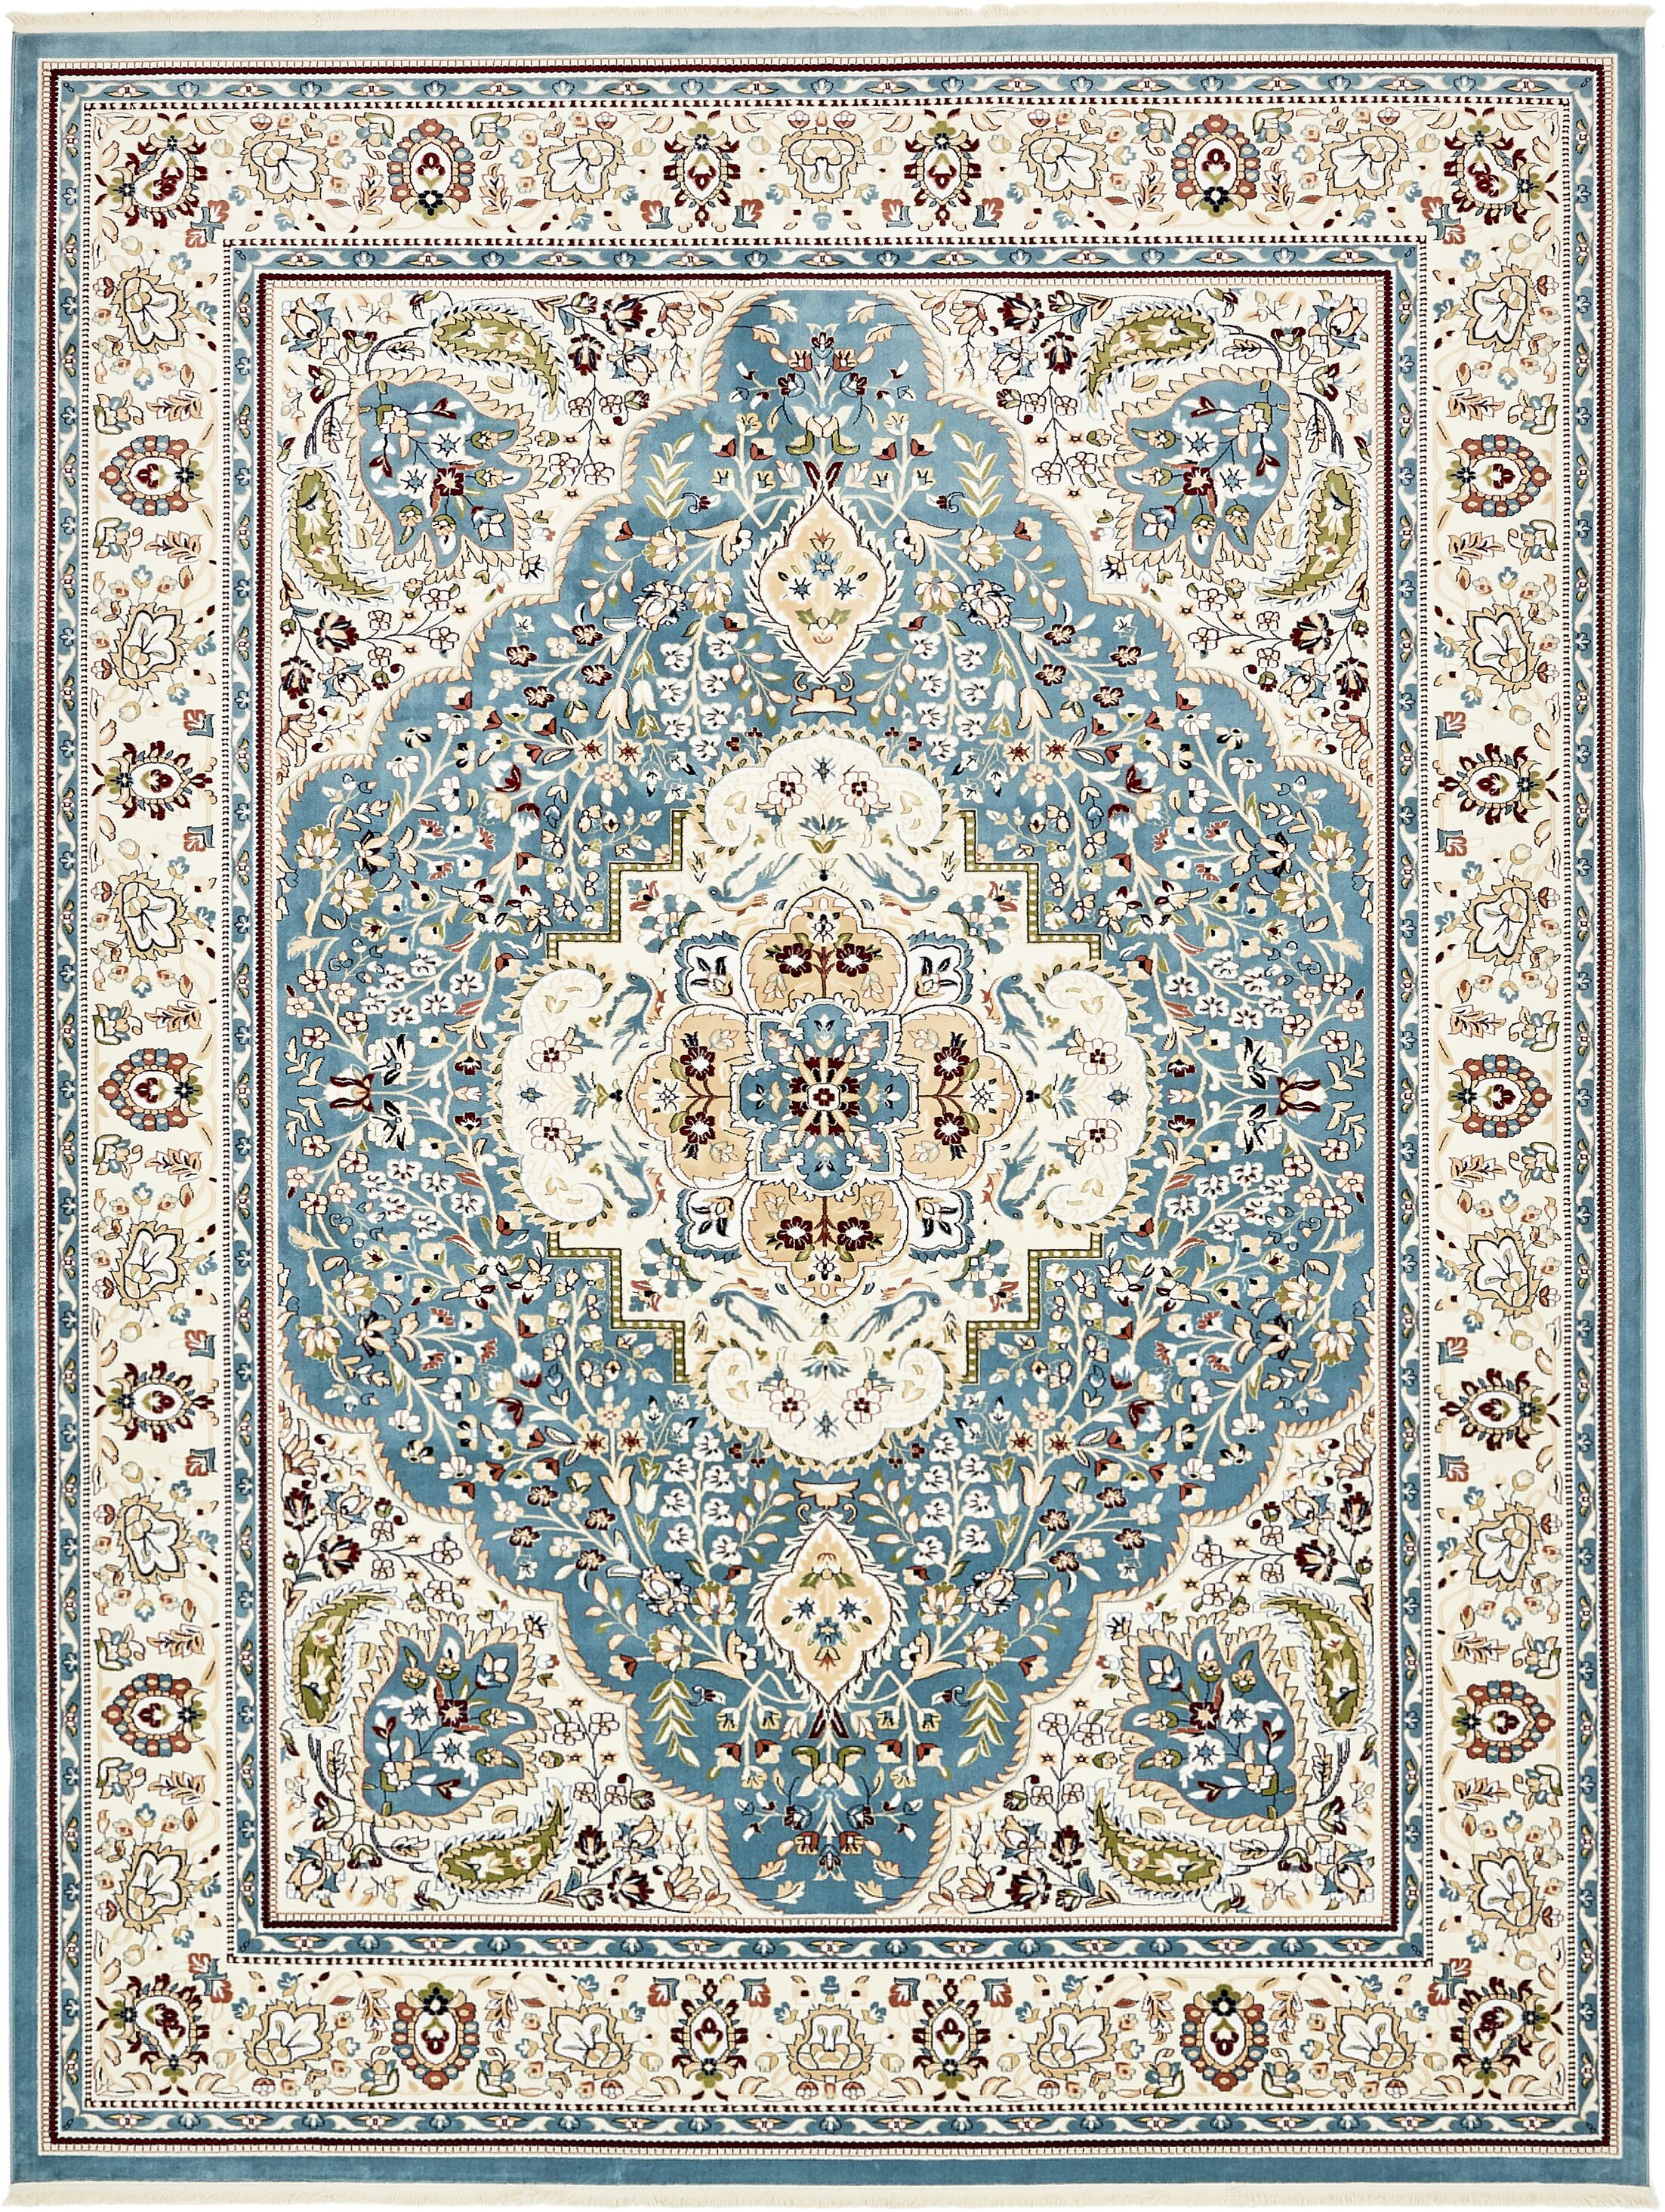 Quince Blue/Cream Area Rug Rug Size: Runner 3' x 13'